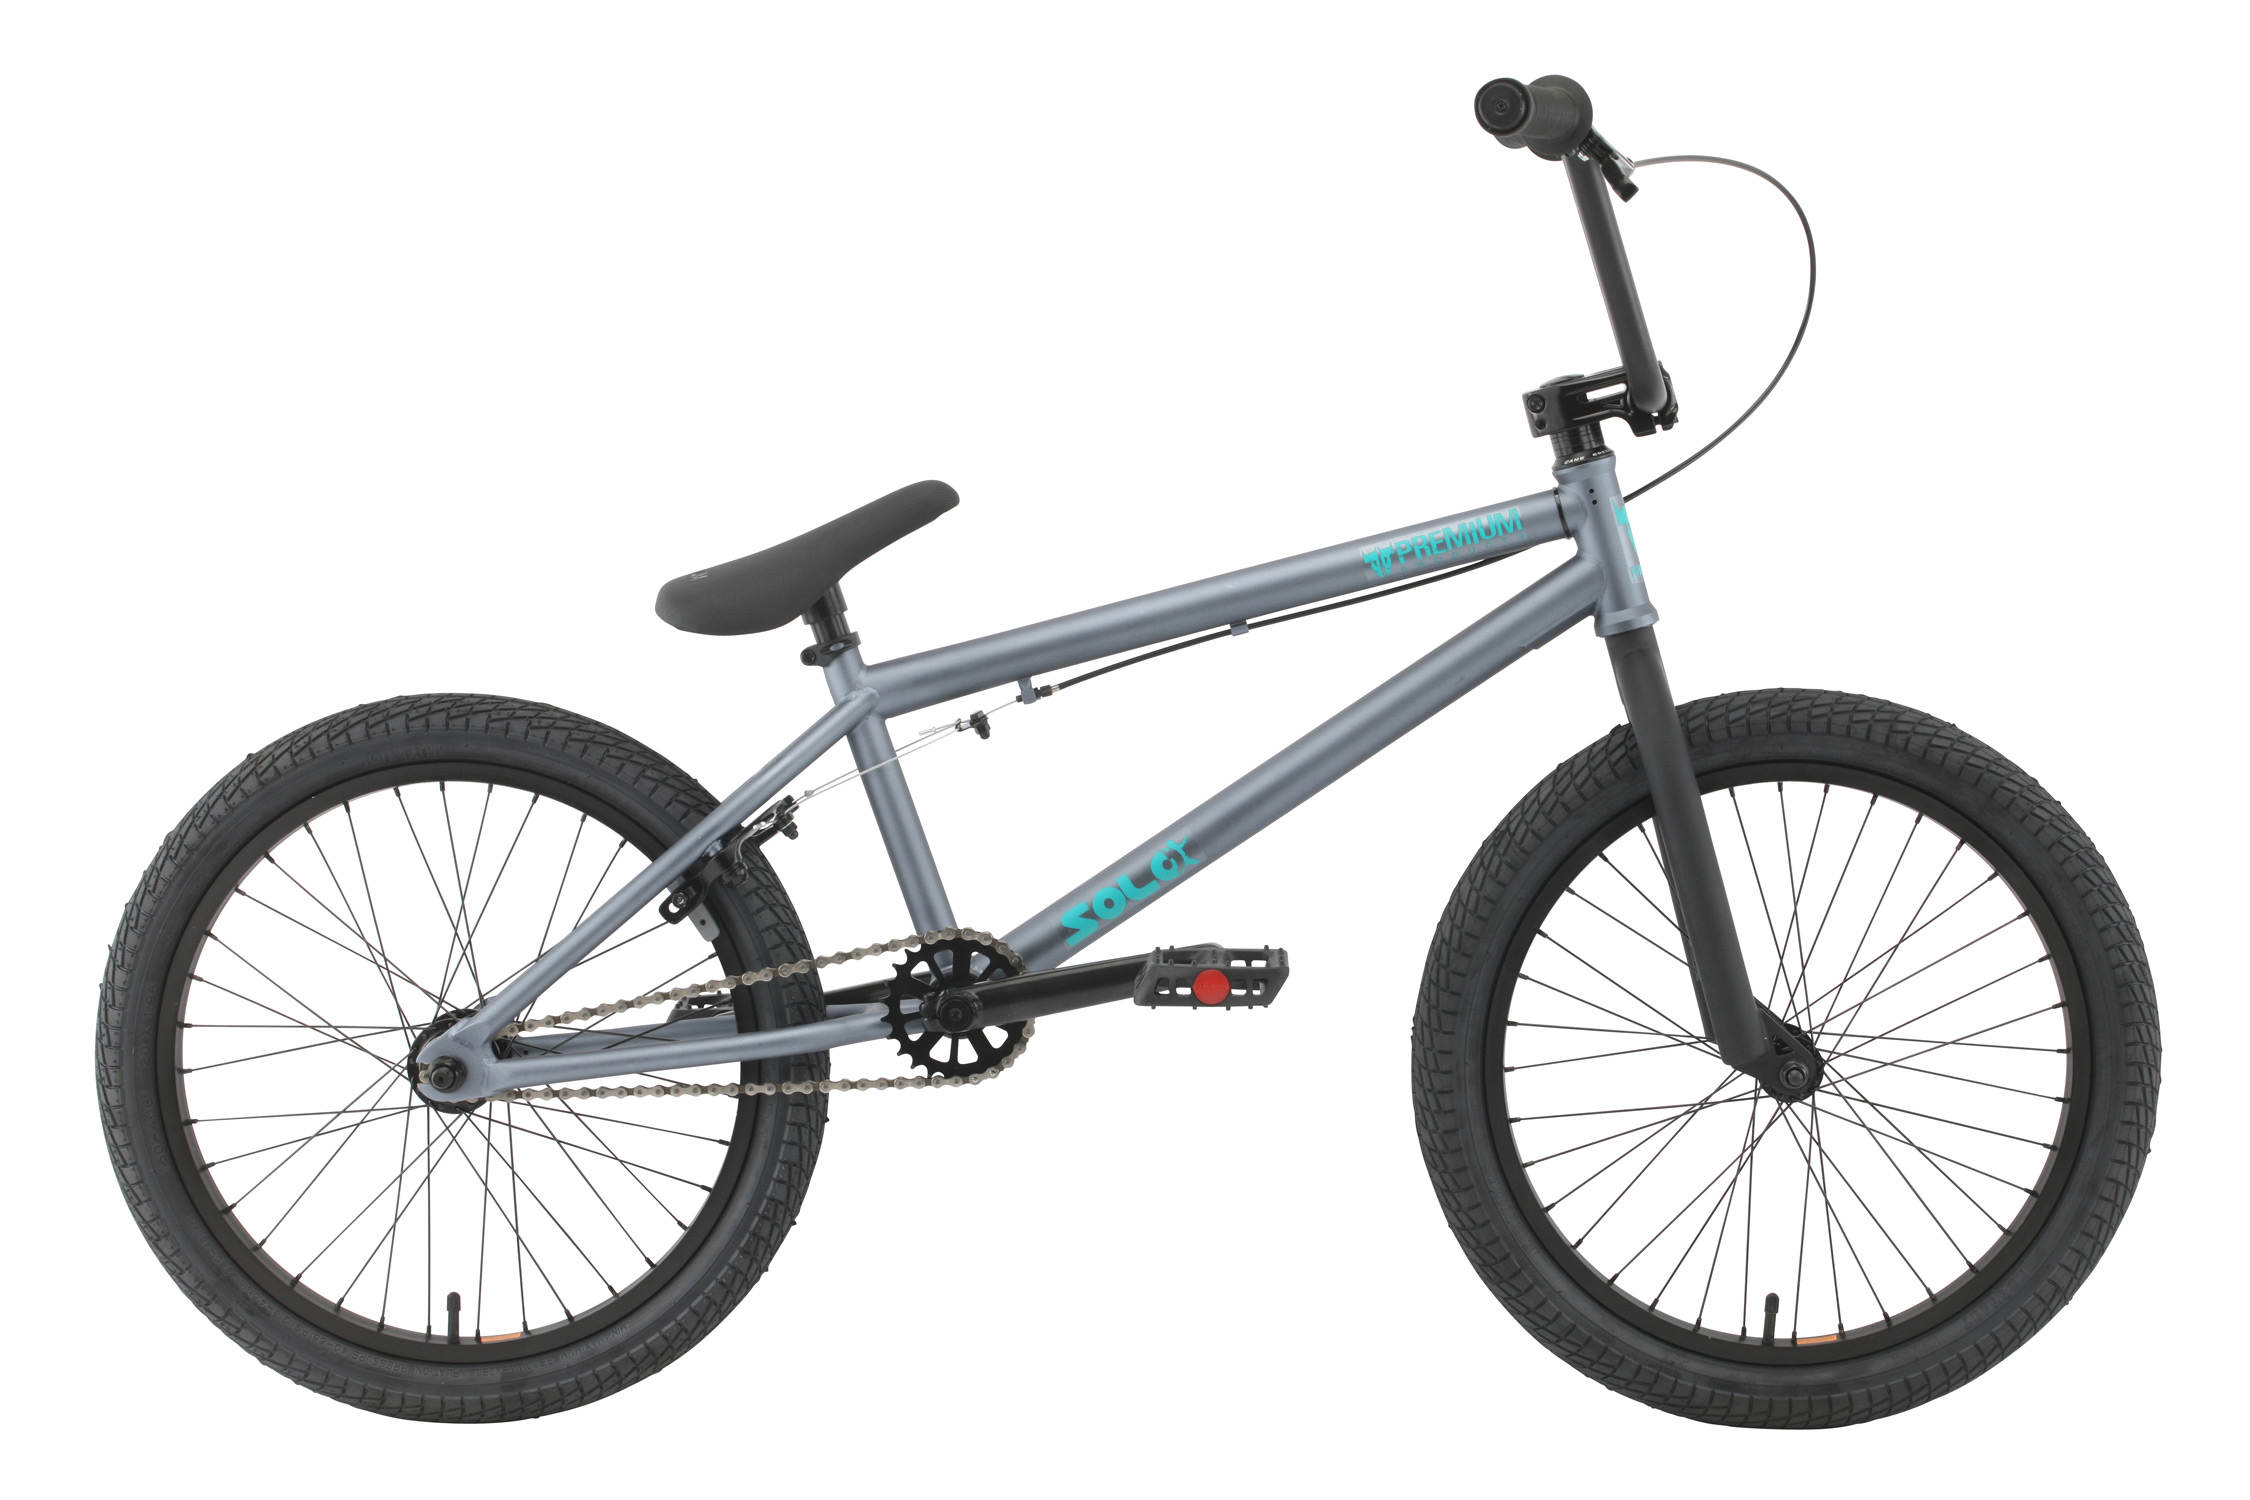 "BMX Key Features of the Premium Solo BMX Bike: Premium frame with chromoly down tube, Mid BB shell, internal head tube Odyssey Twisted plastic pedals 8"" rise bar (on 20"" & 20.5"") or 8.25"" (on 21"") with alloy front load stem Three-piece chromoly175mm 8-spline cranks with sealed Mid BB 25/9 gearing Premium Slim padded seat w/ built-in alloy post WEIGHT SIZING 20"", 20.5"", 21"" FRAME Crmo down tube w/ Mid BB and Internal HT - 20"", 20.5"" or 21"" TT FORK 1 1/8"" Crmo steer tube - Threadless CRANKS 3 pc. tubular Crmo 175mm w/sealed MID BB PEDALS Odyssey plastic pedals TIRES Kenda Kontact 20x2.25 F / 20x1.95 R WHEELS 36h Alienation PBR alloy rims, 36h steel shell 3/8"" Frt / Alloy shell loose ball cassette 14mm Rear hubs ROTOR N/A Straight Cable GRIPS Premium Counterfeit BARS Hi-ten - 8"" Rise w/20"" & 20.5"" frame, 8.25"" rise w/21"" frame SEAT Premium slim padded one piece seat with built in post PEGS N/A - $241.95"